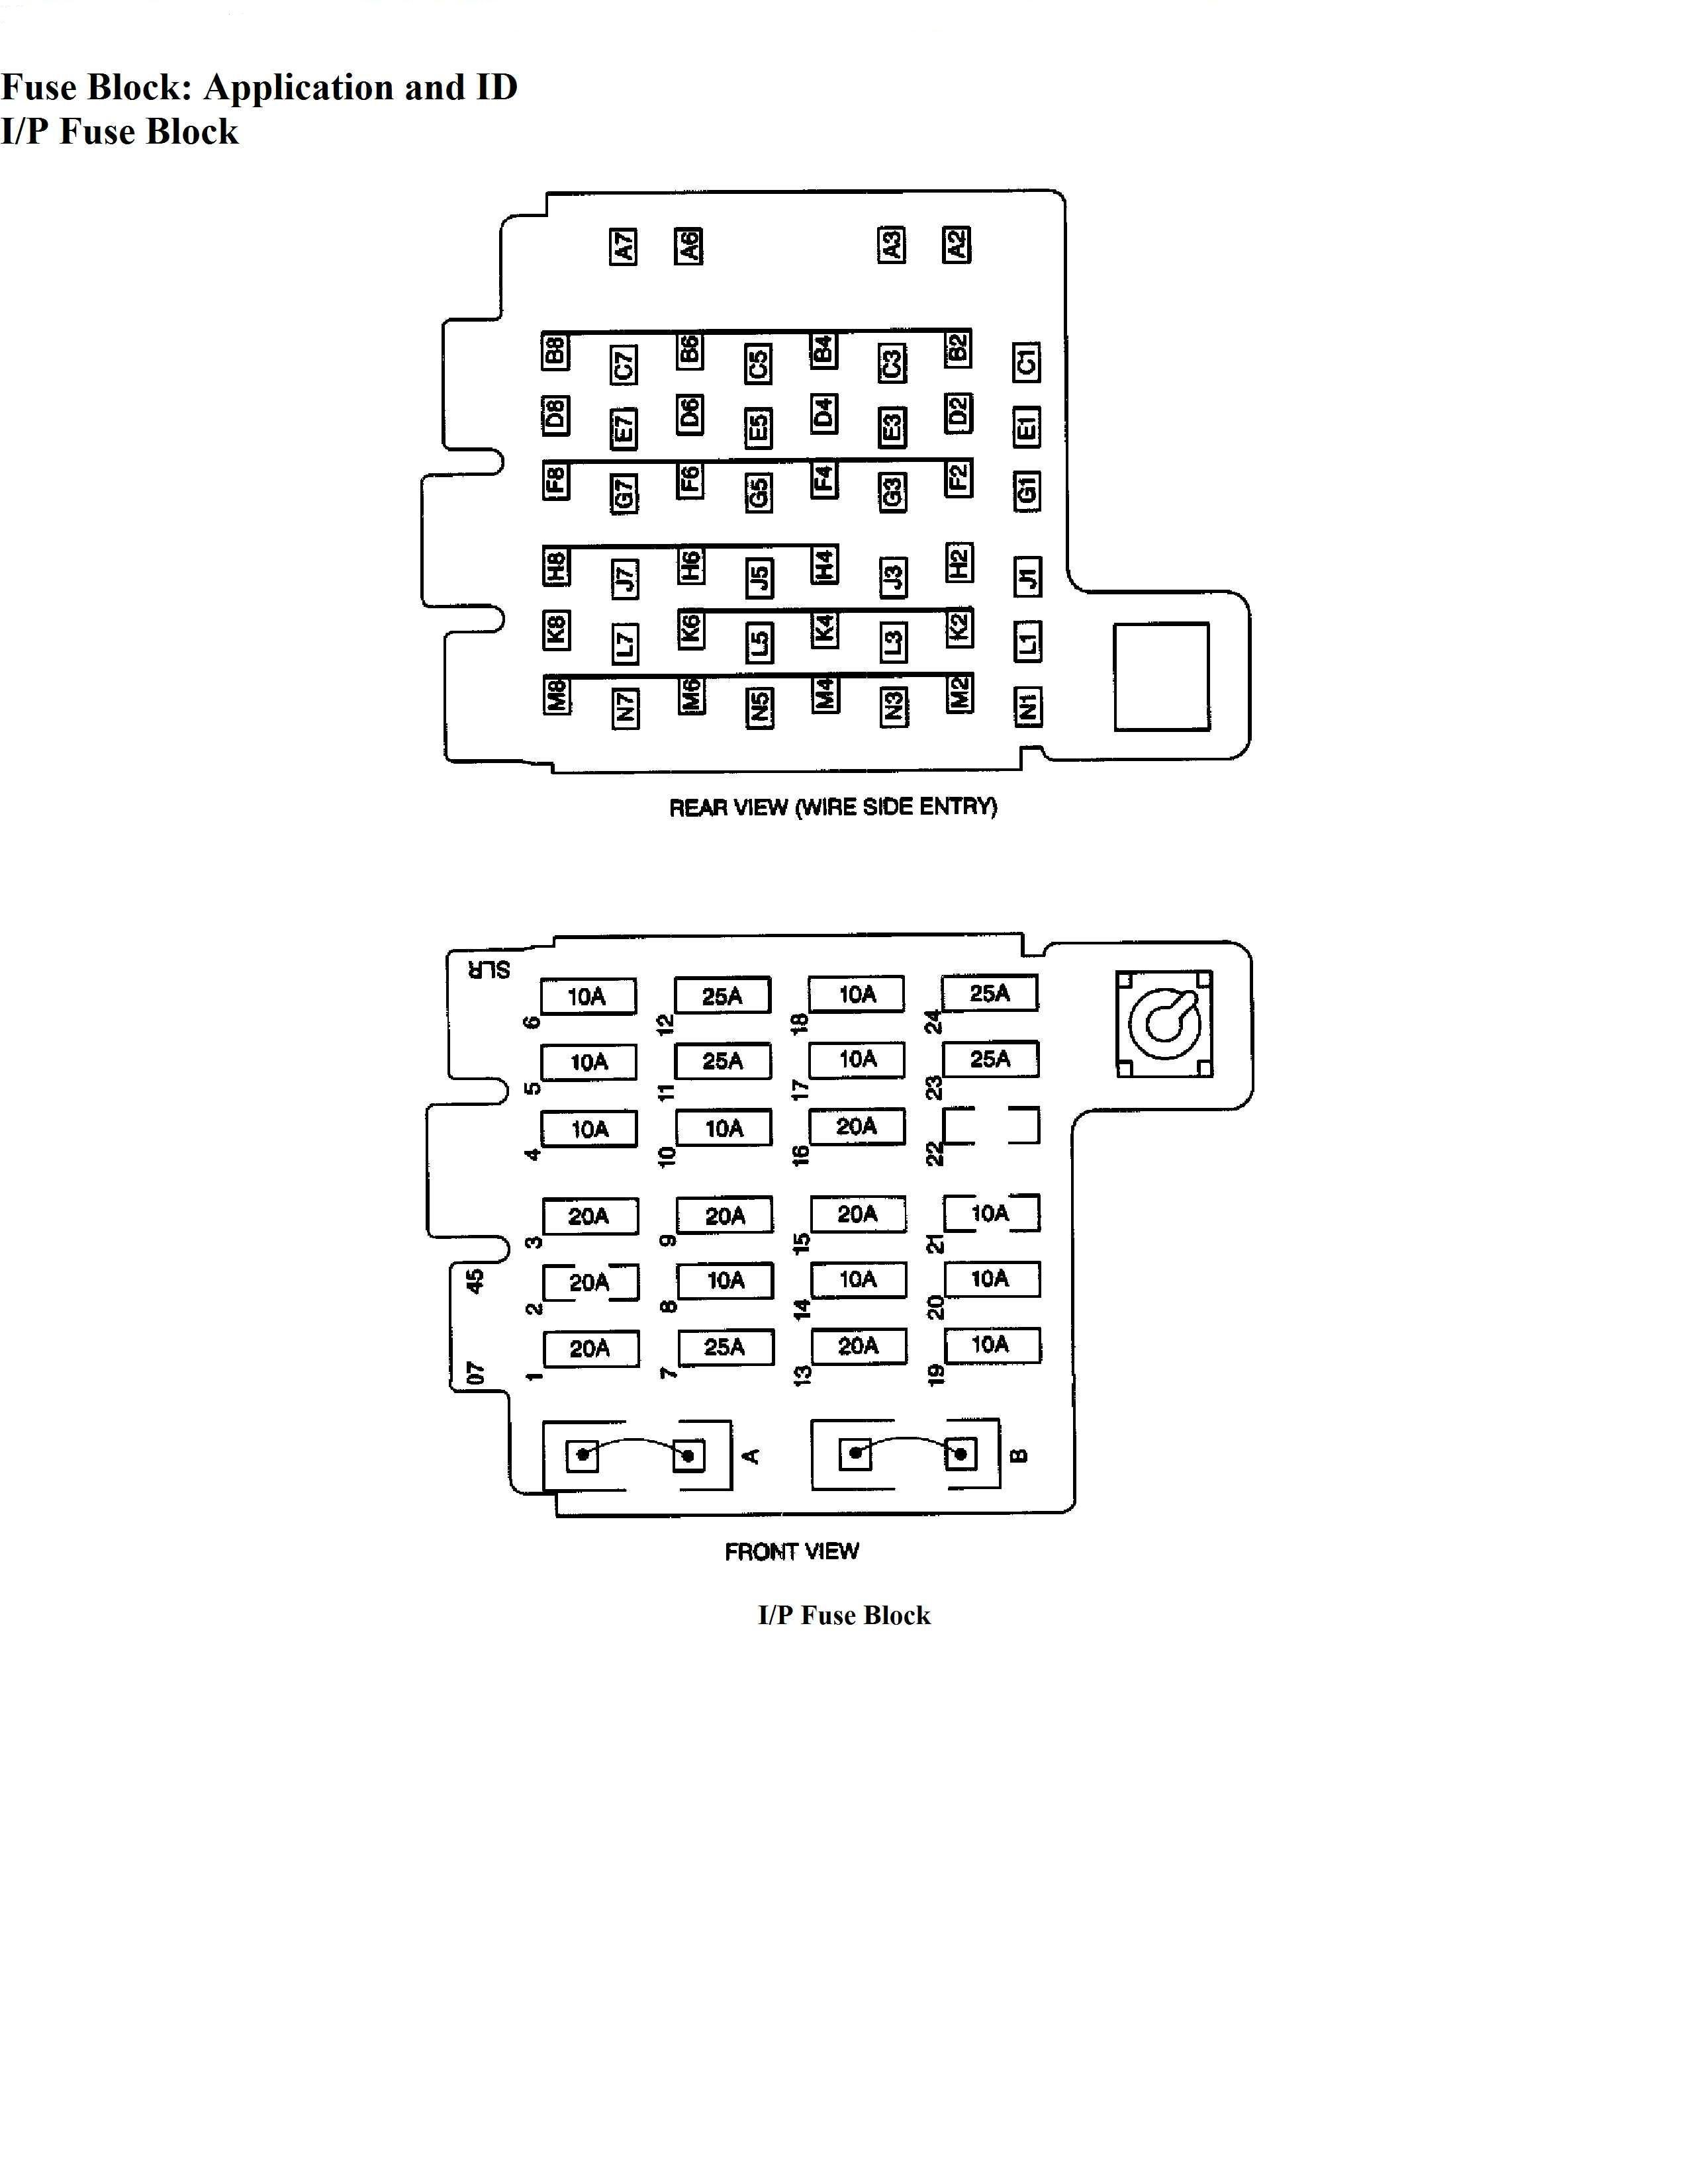 2002 Chevy Trailblazer Fuse Box Schematic Diagrams For A 2006 Diagram 2005 Chevrolet Layout Trusted Wiring Location